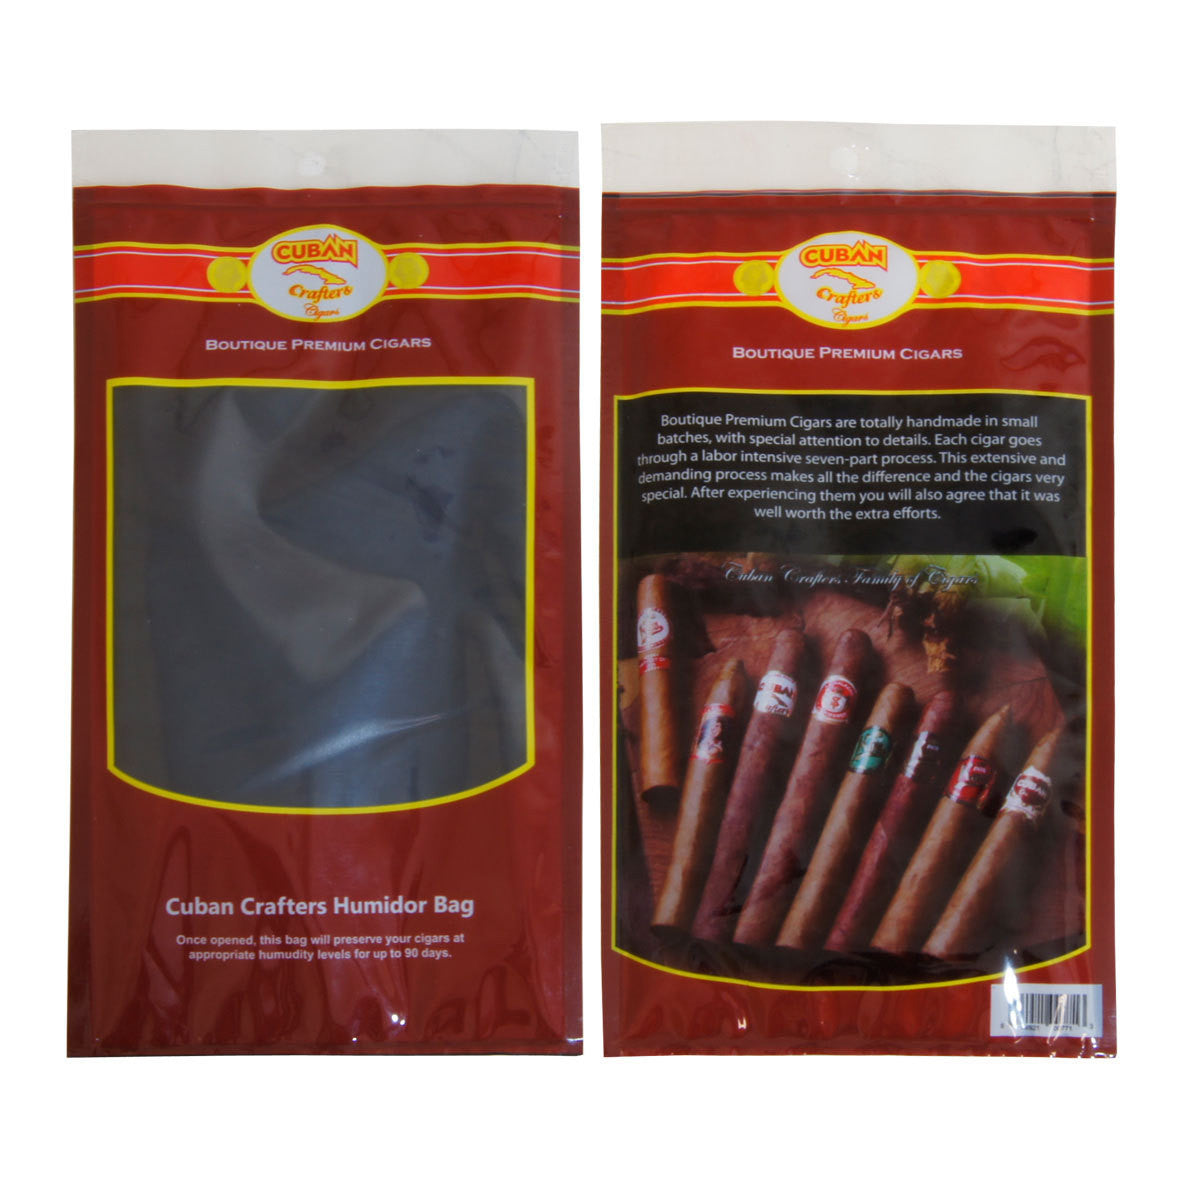 5 Travel Humidor Bag of 3 Cigar Capacity Each - Humidors Wholesaler